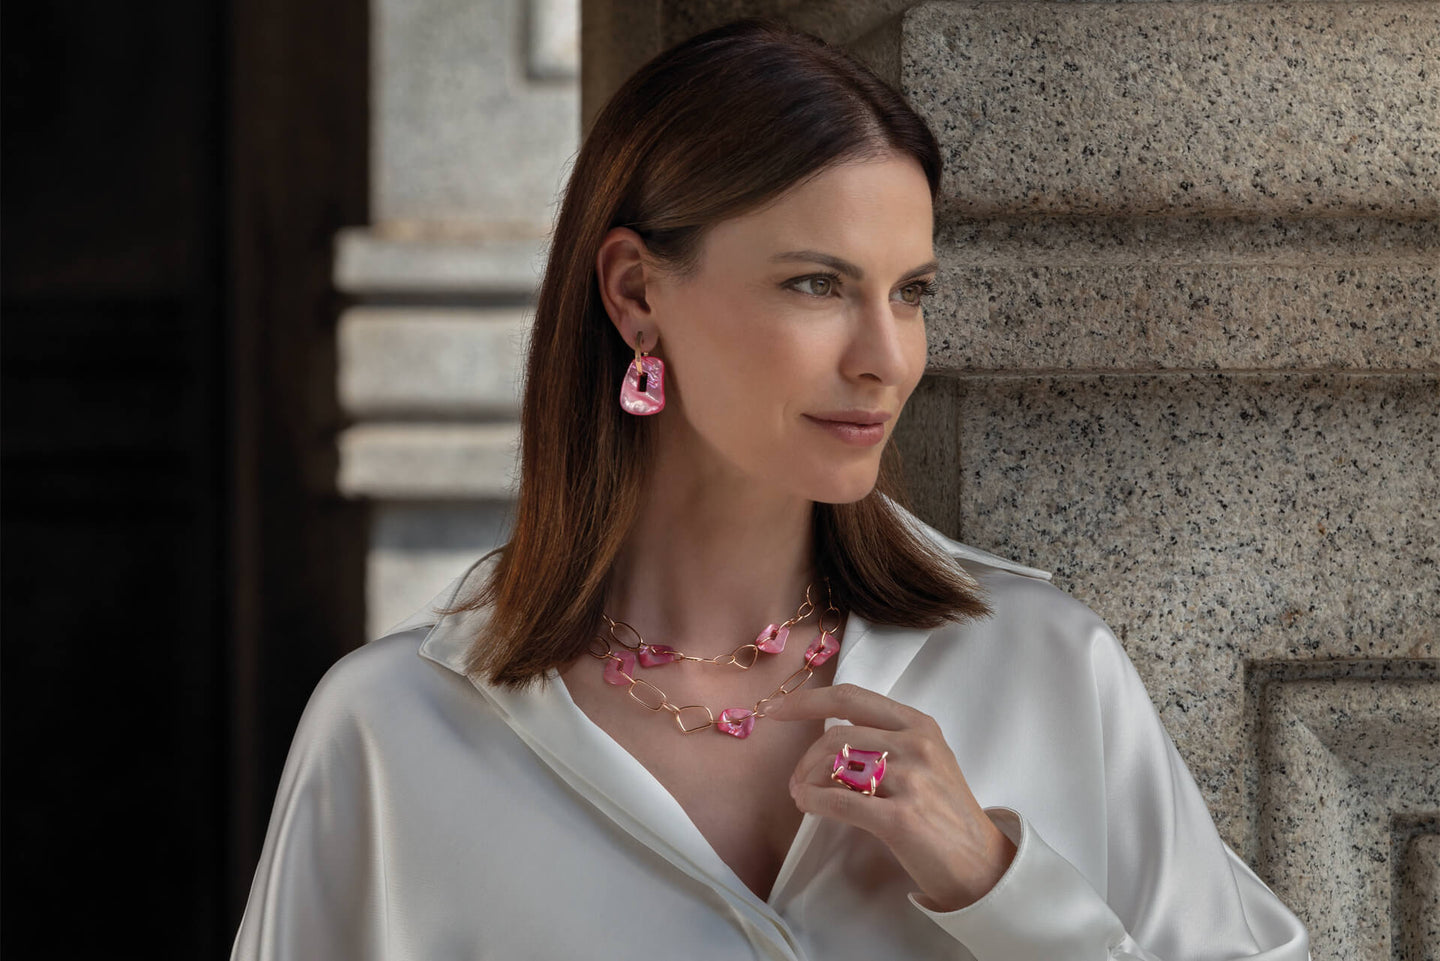 Mattioli creates colourful fine jewellery relying on innovation and a tradition of 150 years of the best Italian craftsmanship. One of the most innovative jewelry companies in the world. Born and based in Turin.